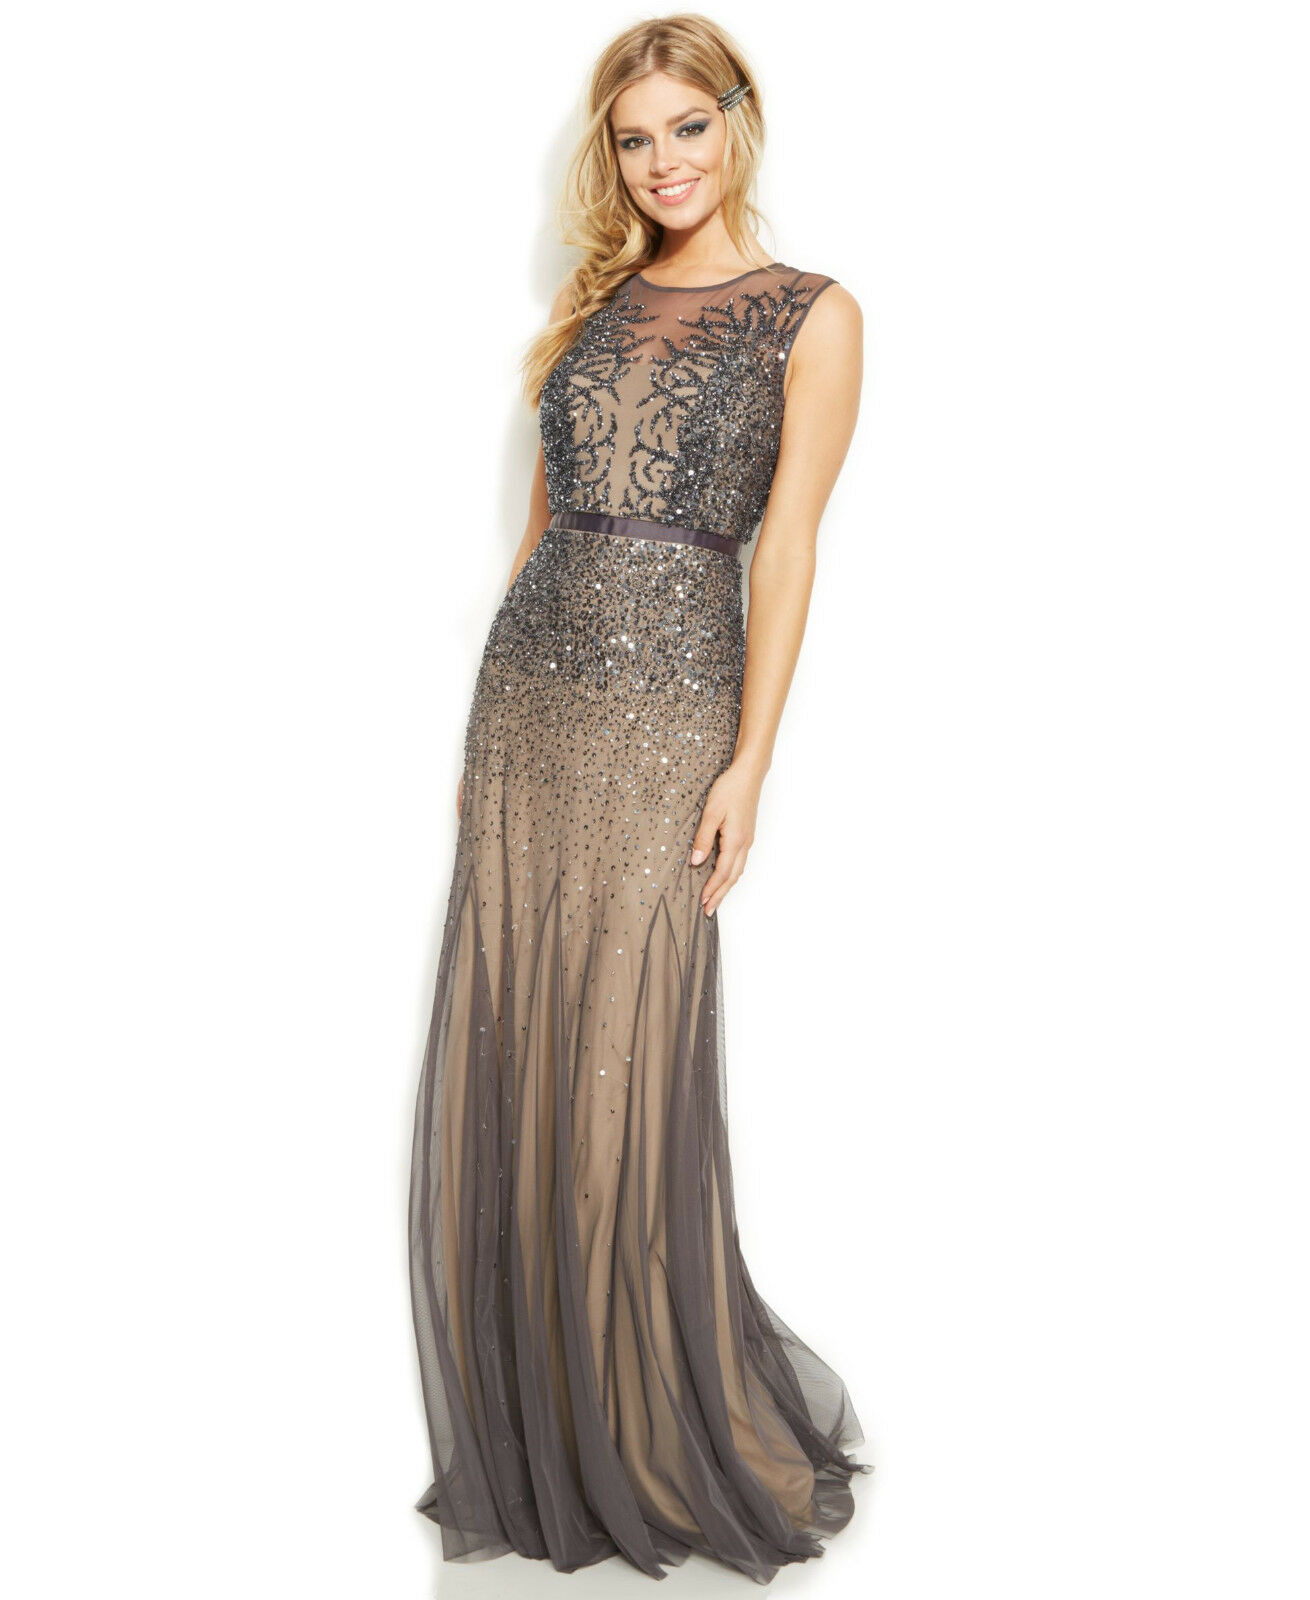 Adrianna Papell New Gunmetal Sleeveless Beaded Illusion Formal Gown    6